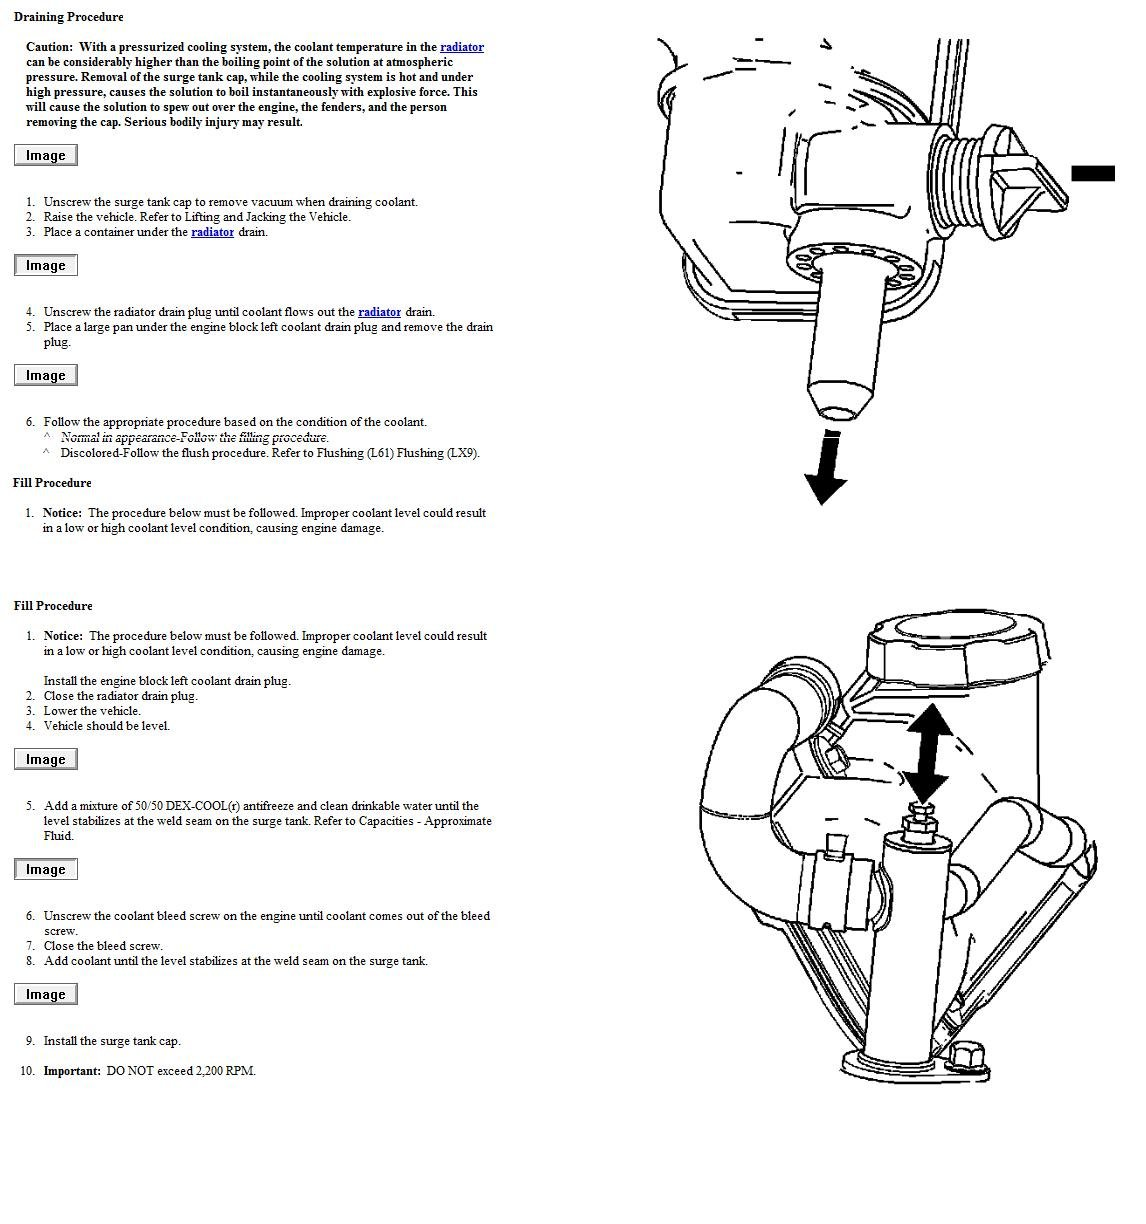 Have A 2006 Chevy Malibu Maxx V6 3500 Was Wondering How You Do A Coolant Change It Does Not Have A Drain Plug Which Is